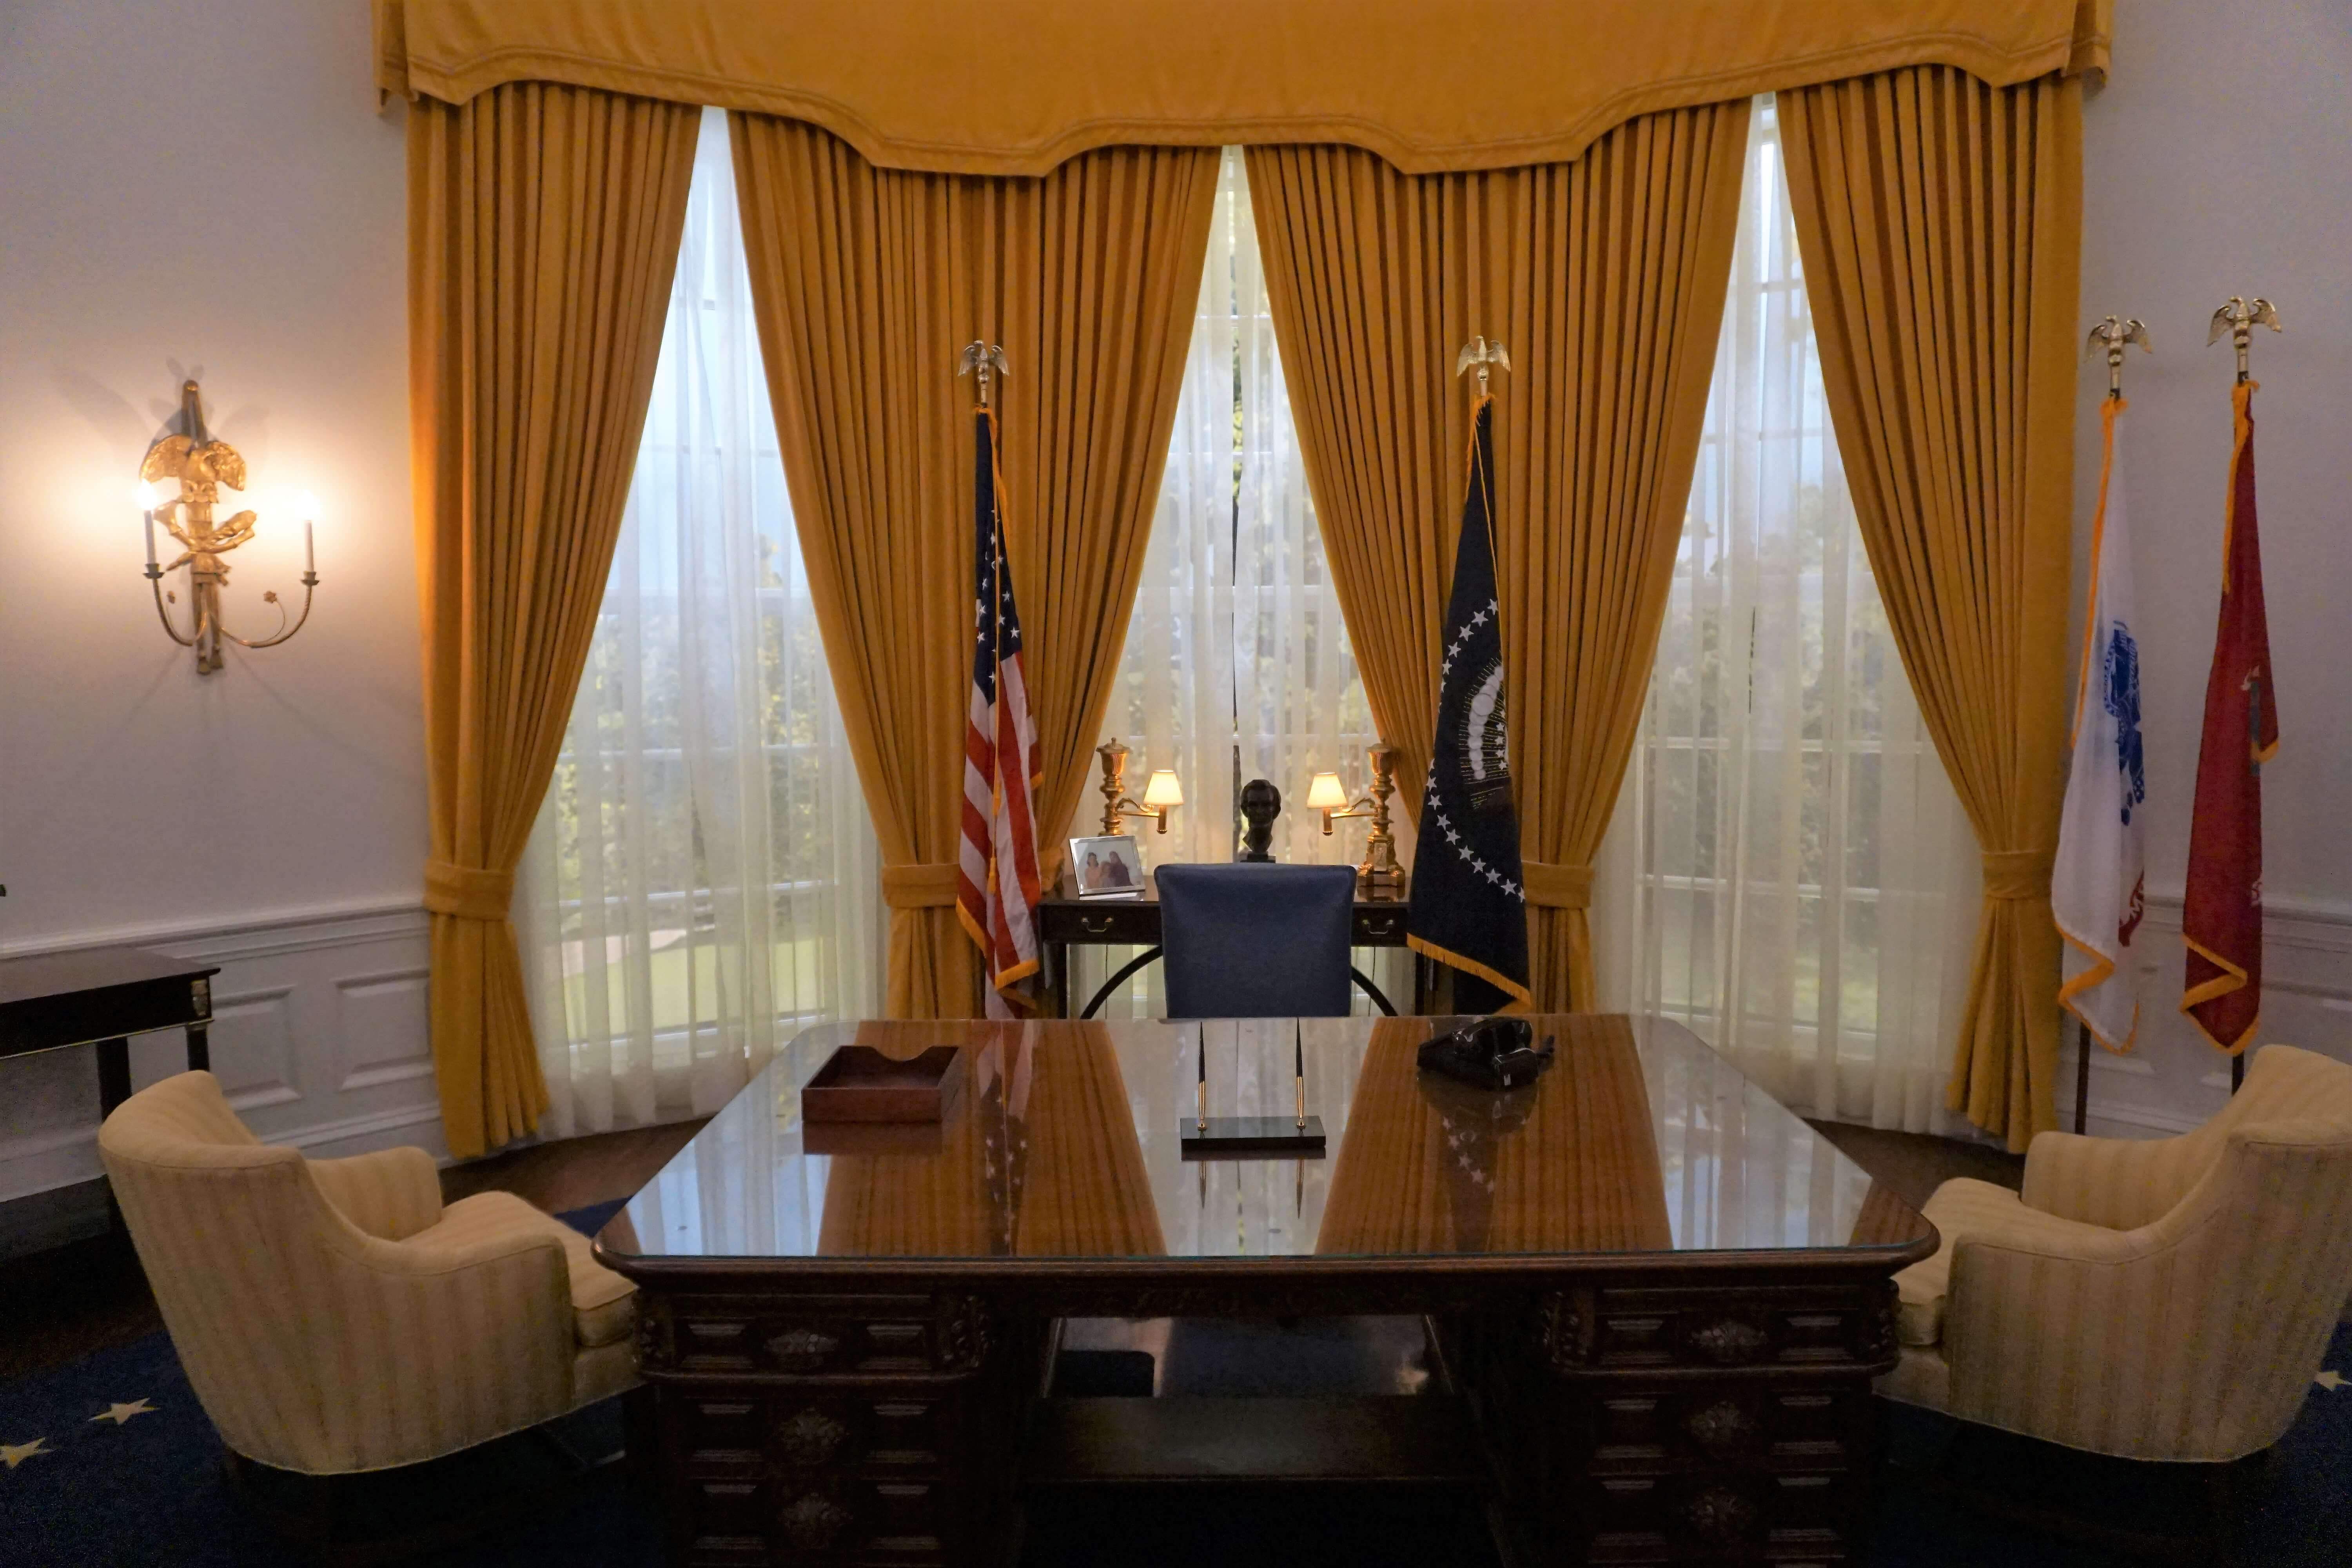 Replica of oval office during Richard Nixon's presidency